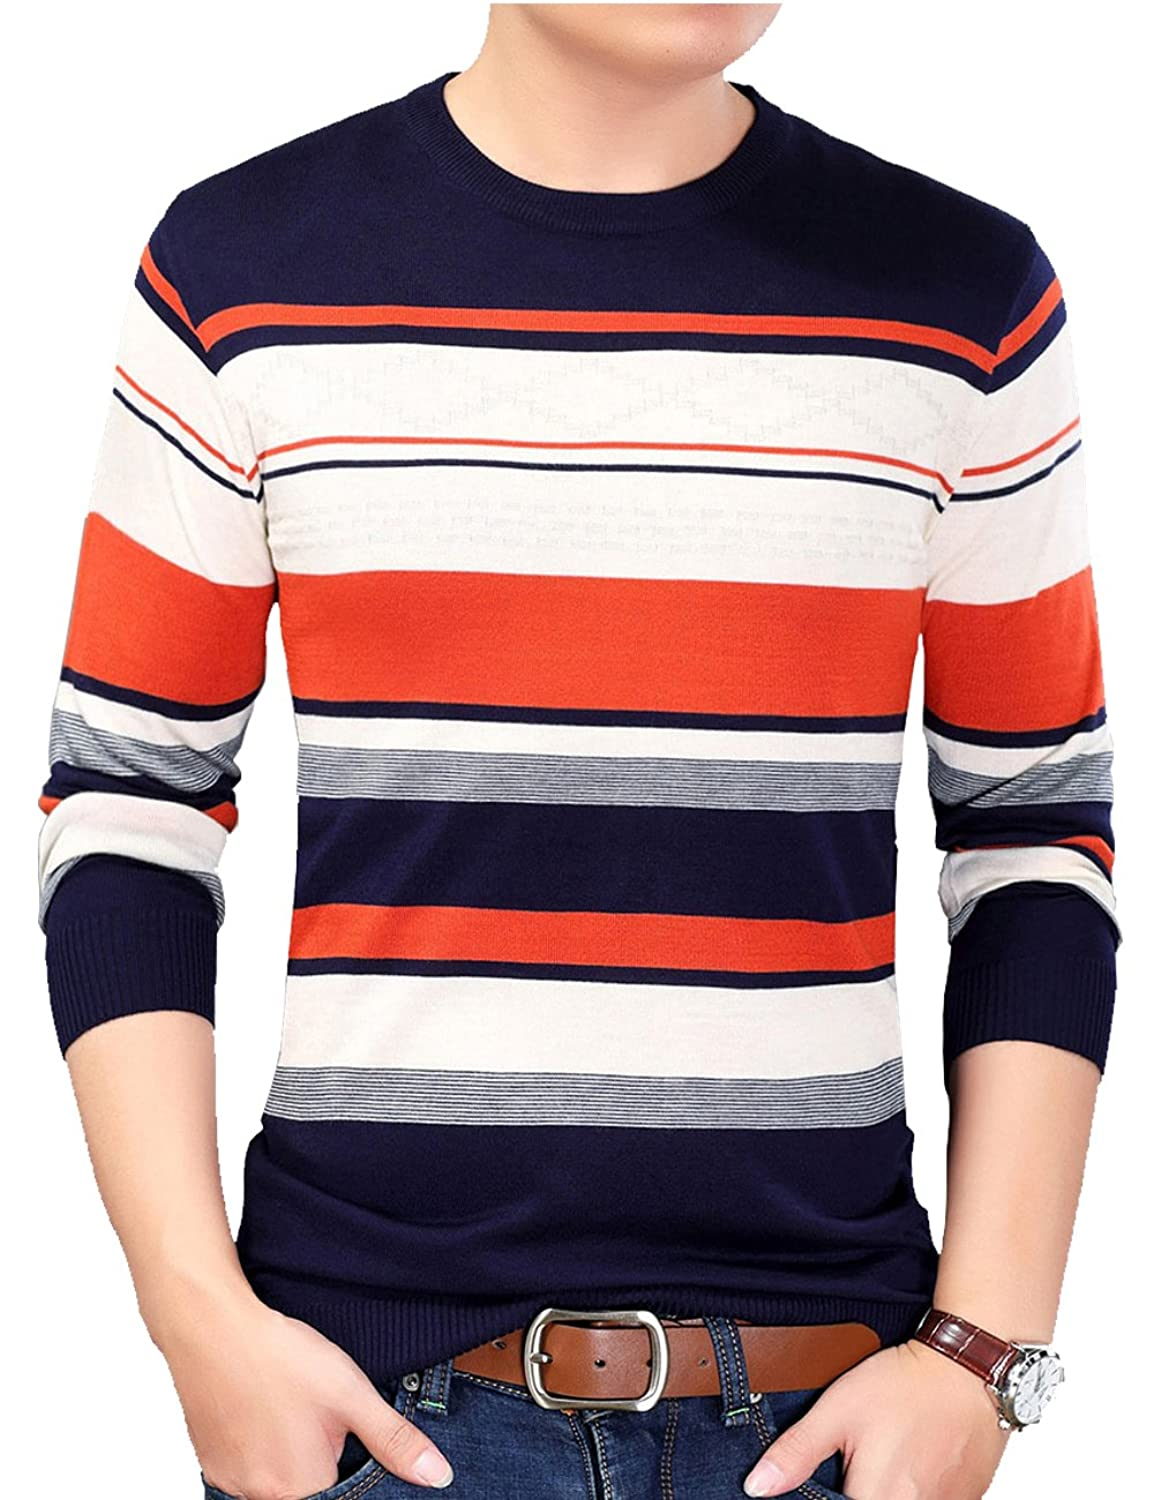 Hot S.FLAVOR Men's Casual Basic Slim Fit O-Neck Pullover Sweater hot sale